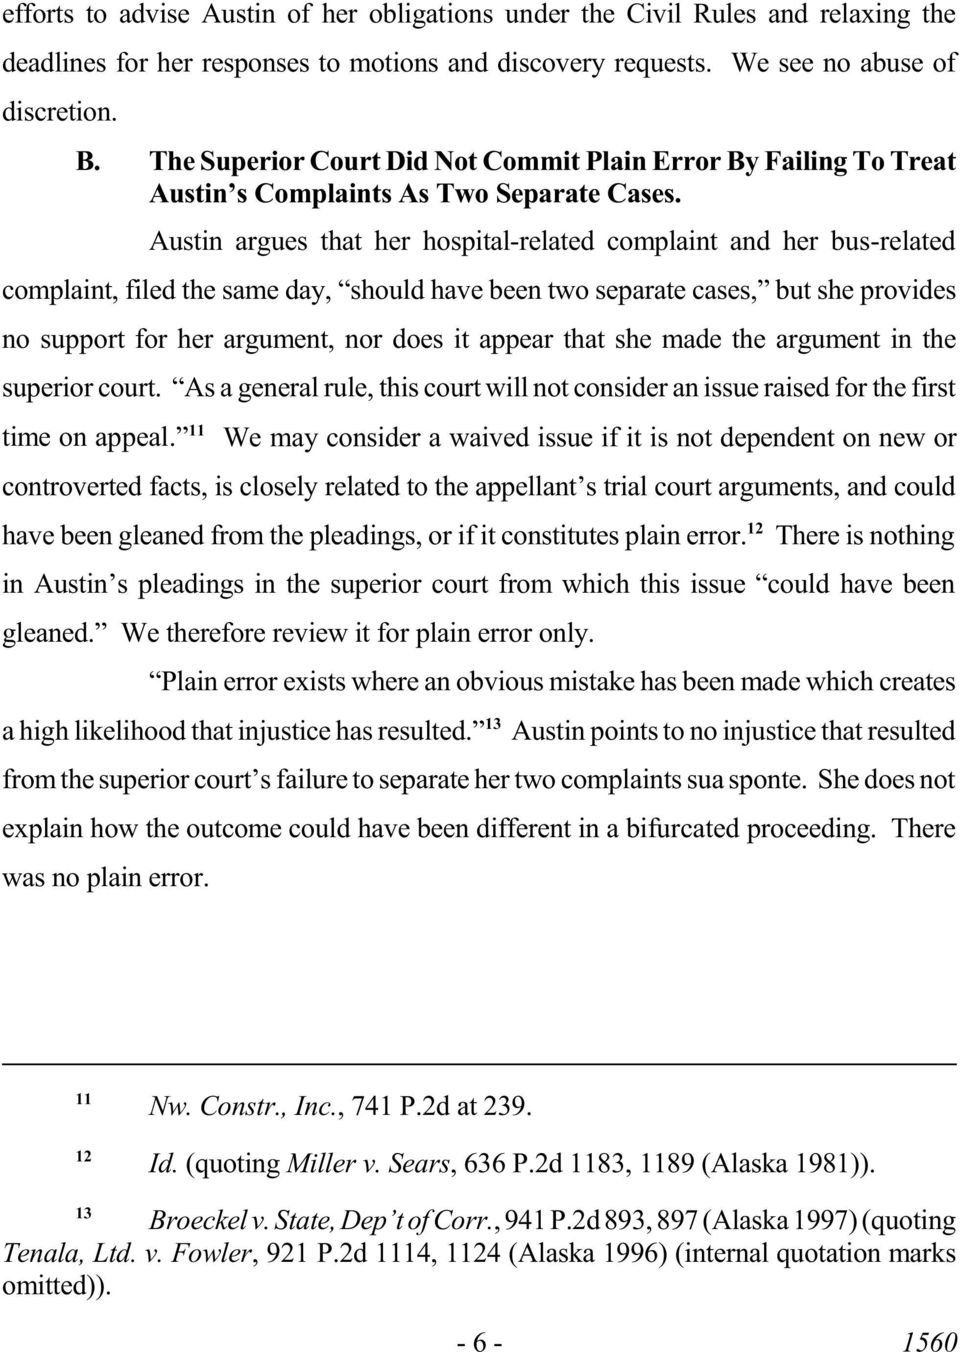 Austin argues that her hospital-related complaint and her bus-related complaint, filed the same day, should have been two separate cases, but she provides no support for her argument, nor does it